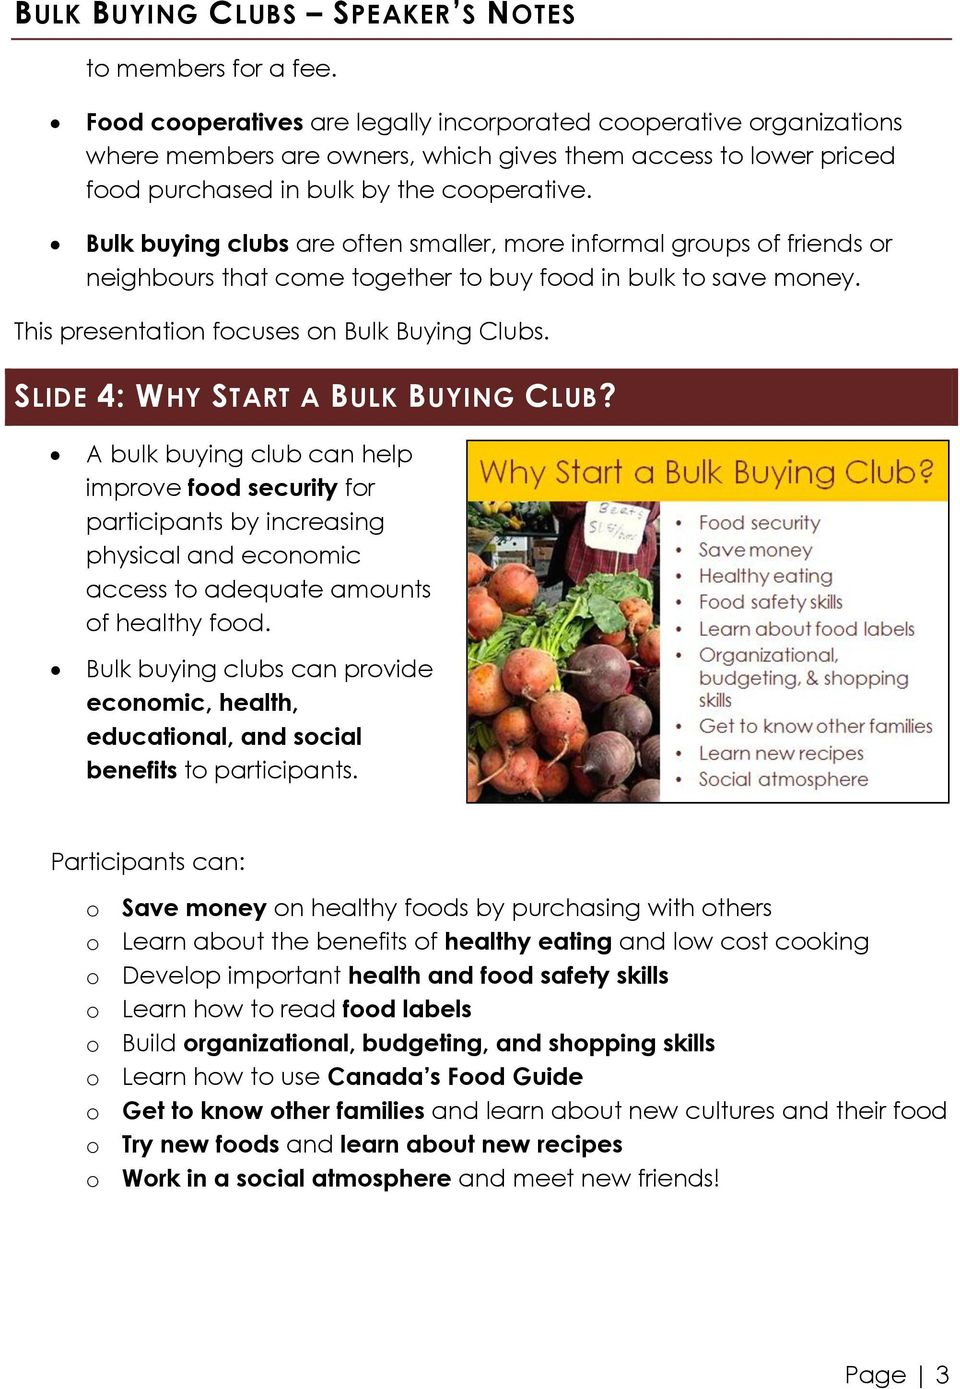 SLIDE 4: WHY START A BULK BUYING CLUB? A bulk buying club can help improve food security for participants by increasing physical and economic access to adequate amounts of healthy food.